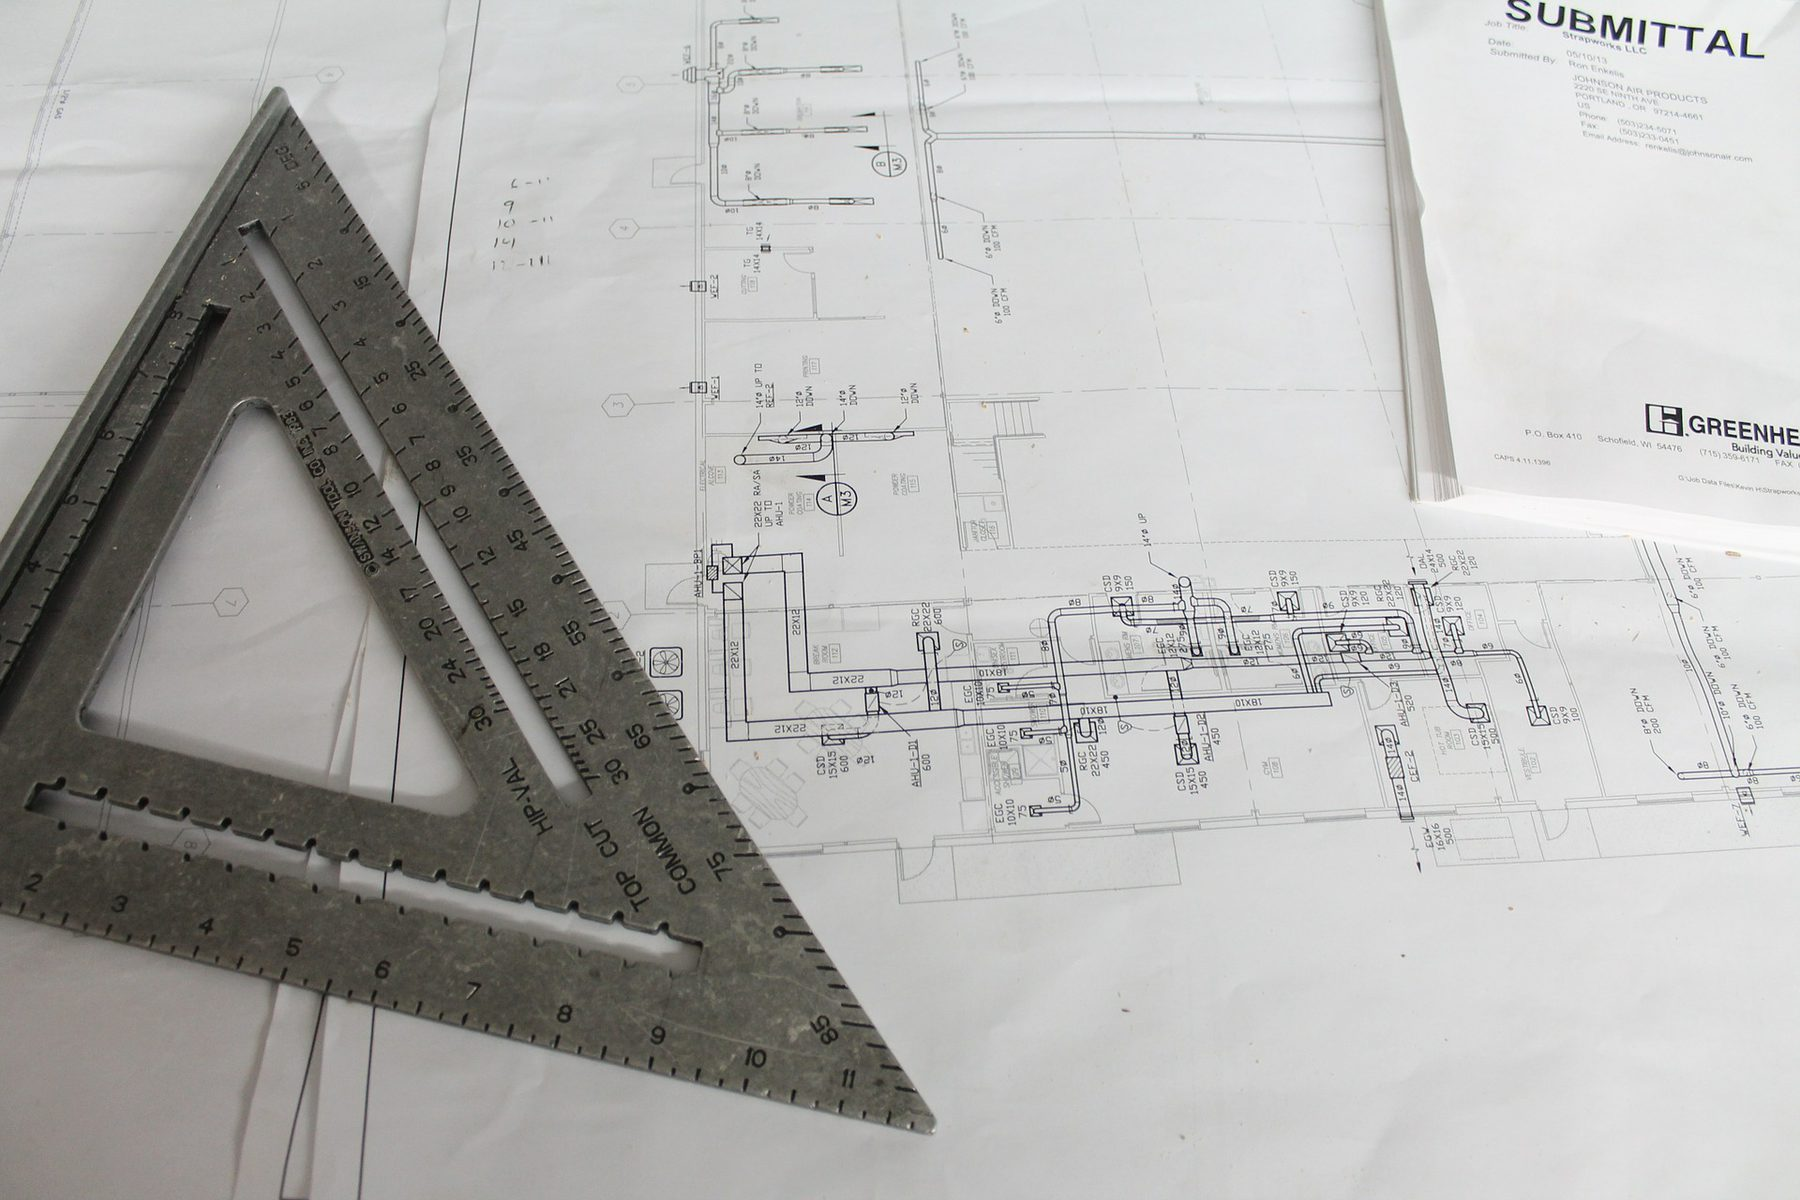 Design & Planning [Construction] (Sector Header: Building Plan)